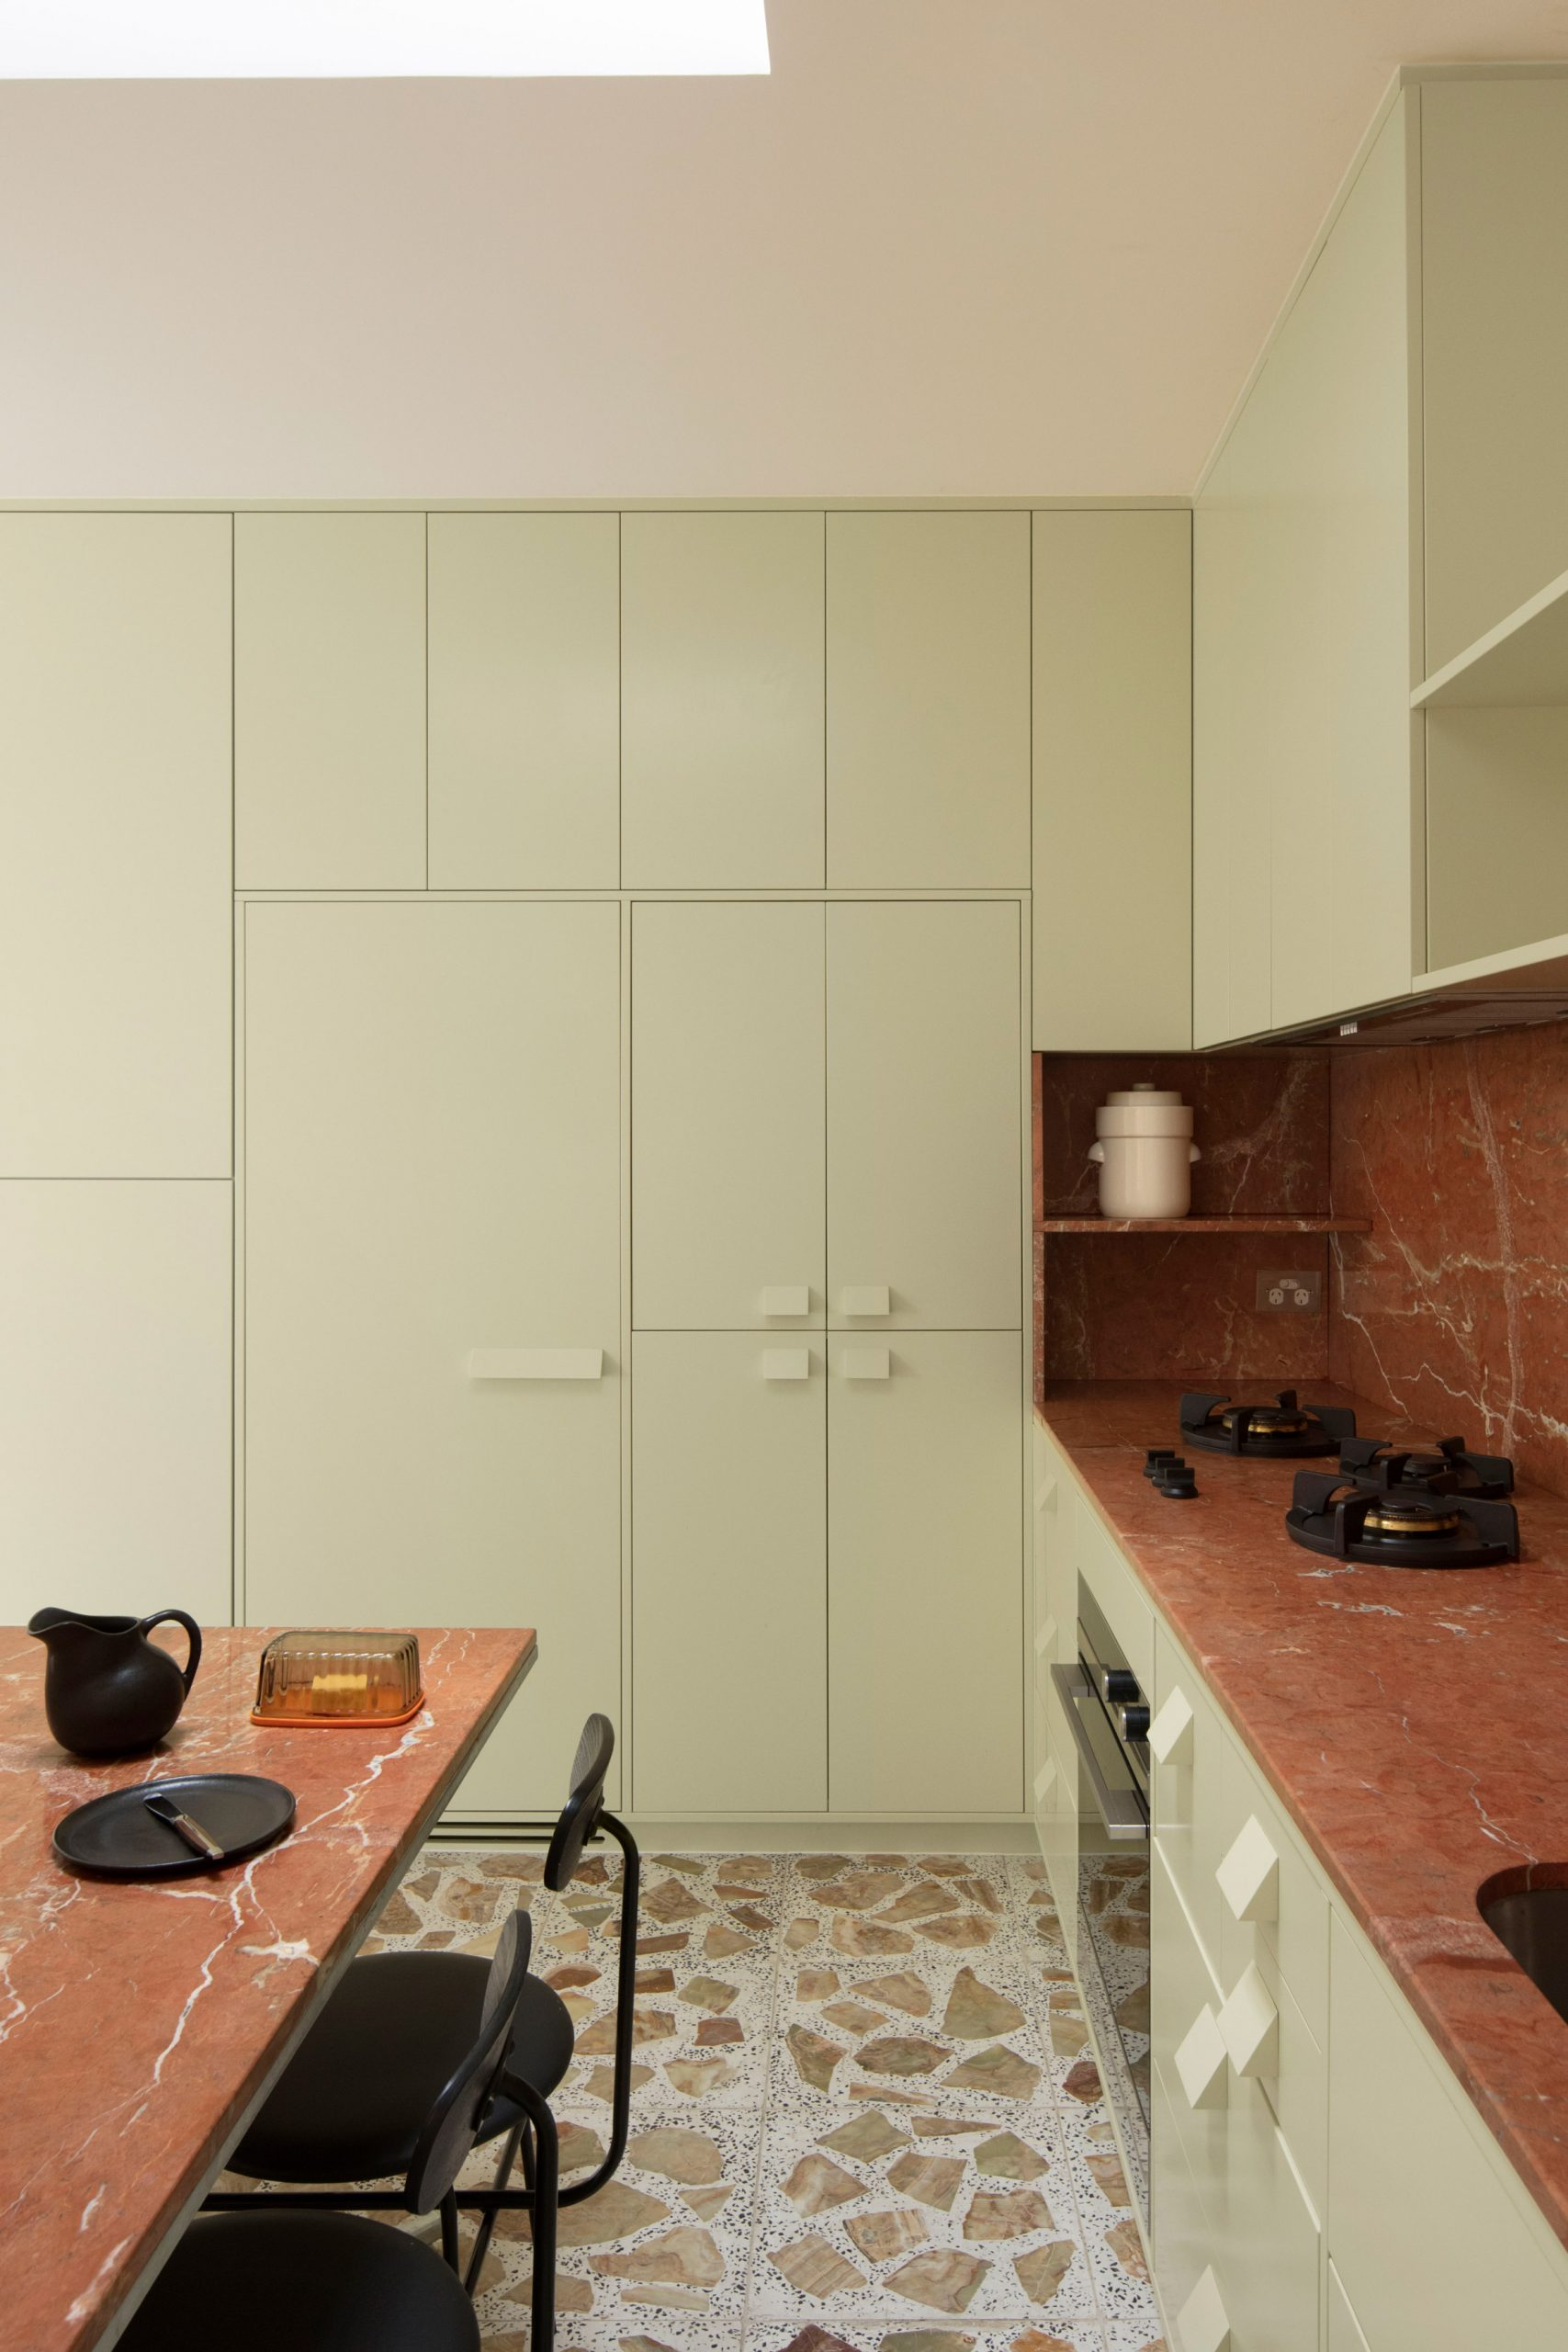 Pistachio green cabinets and red marble worktops in Brunswick apartment by Murray Barker and Esther Stewart